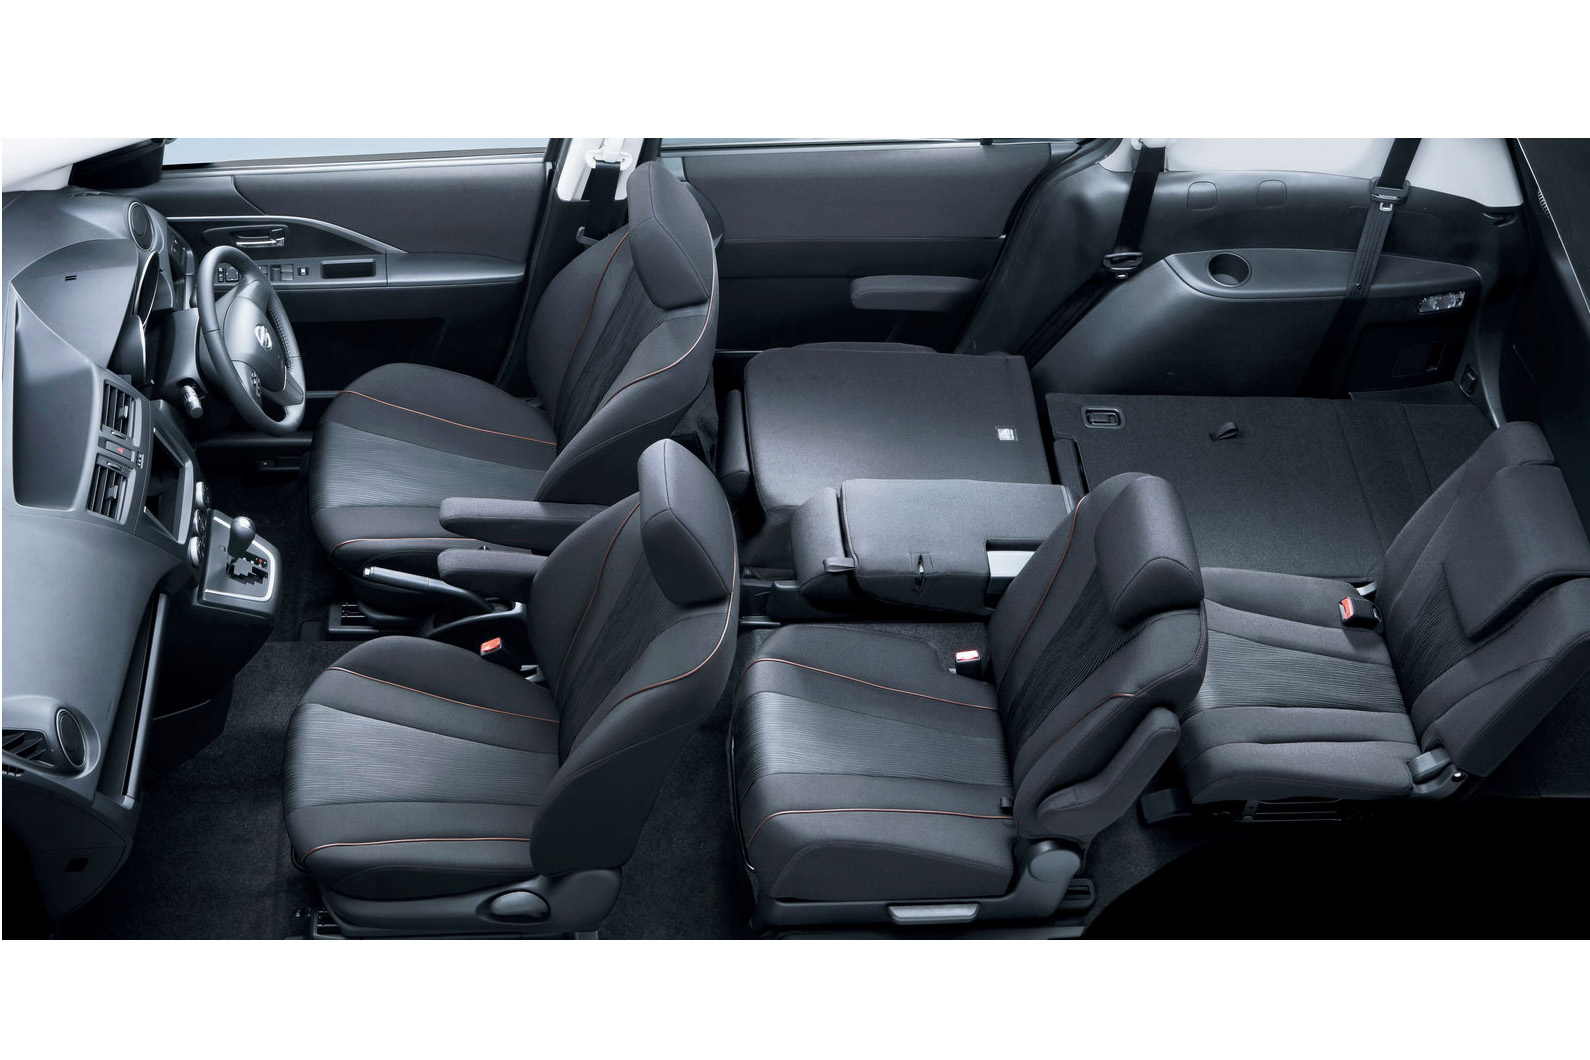 Nissan Launches Lafesta Highway Star 7 Seater MPV In Japan